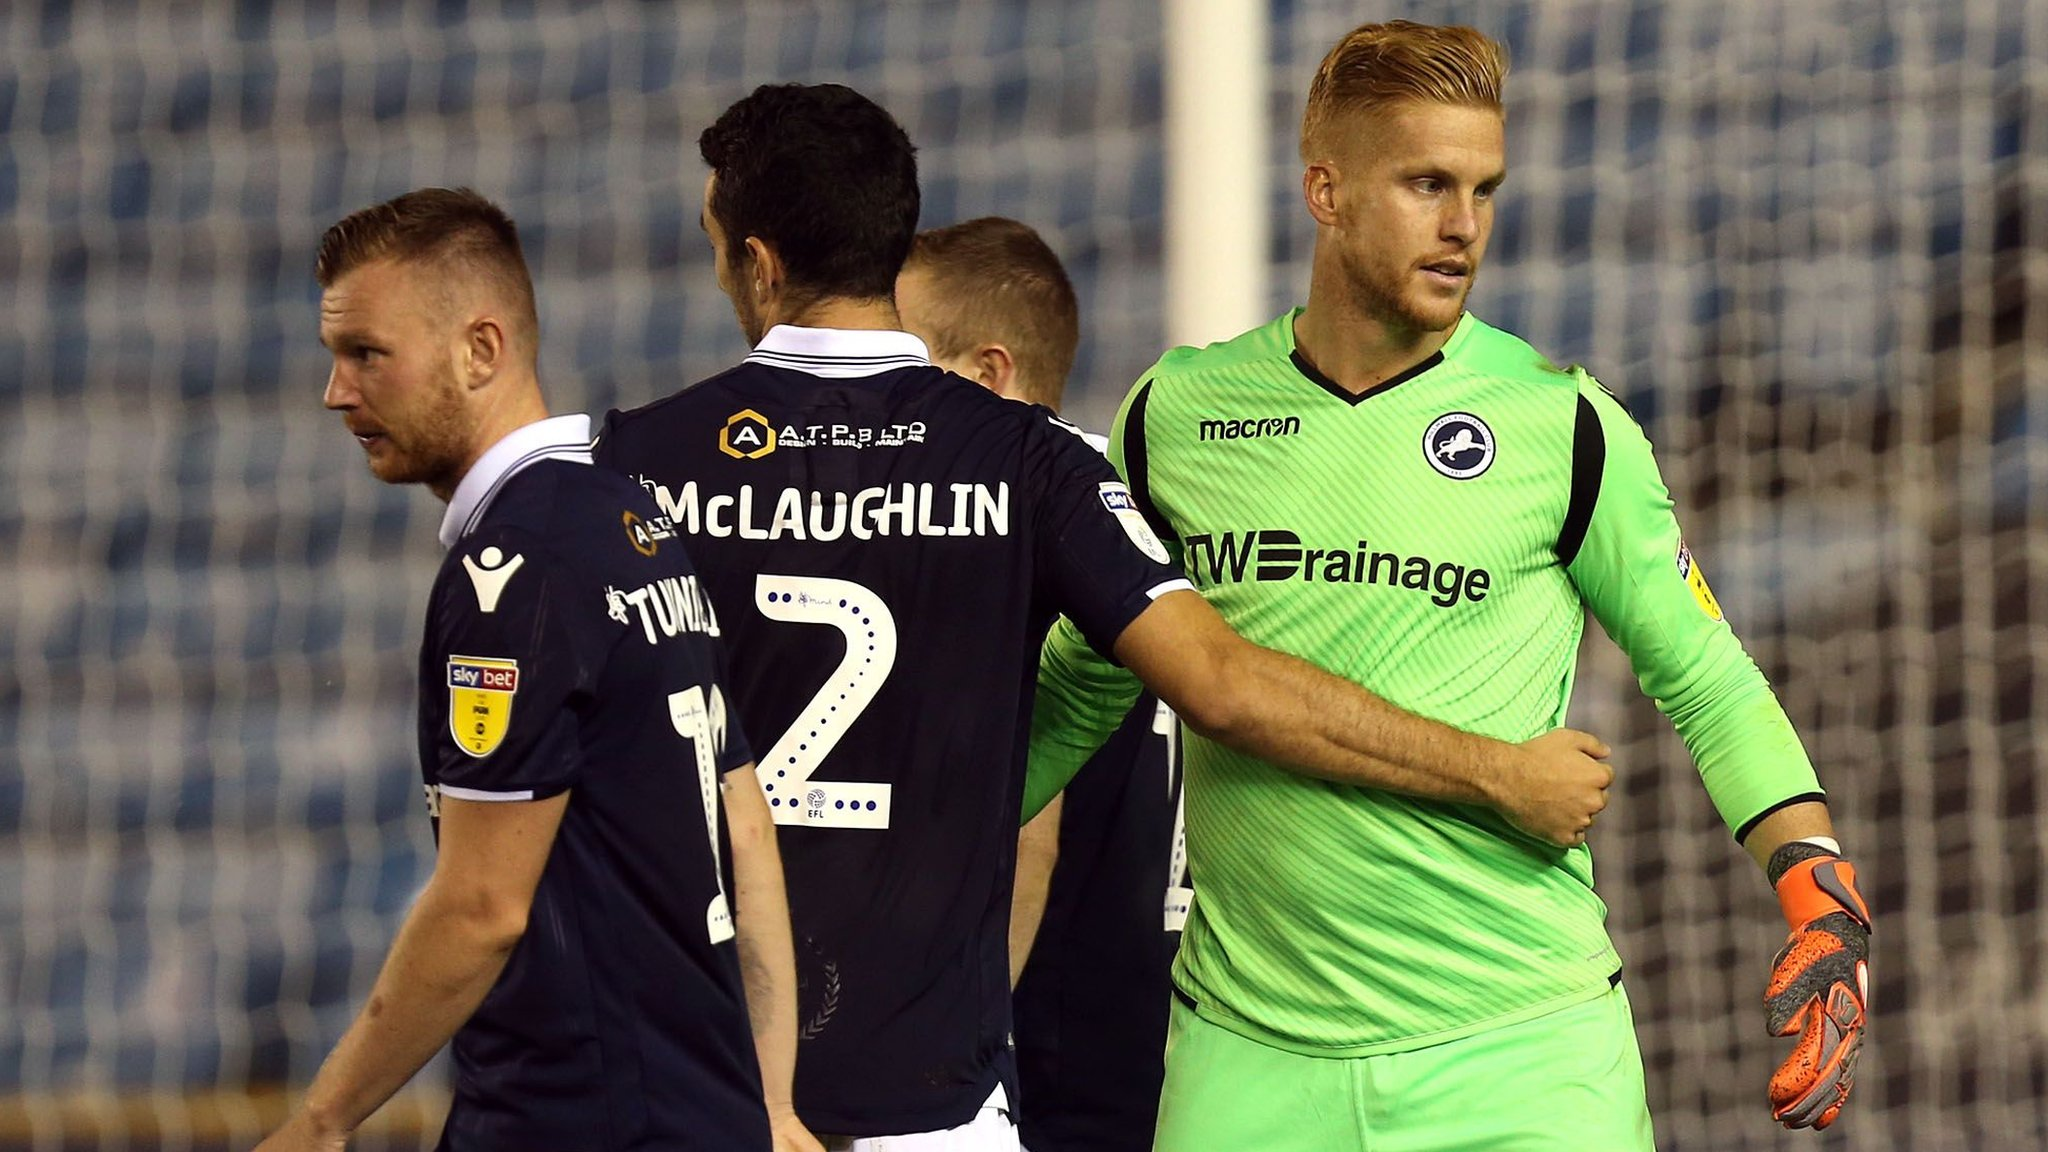 Carabao Cup: Millwall edge past Gillingham on penalties to reach round two